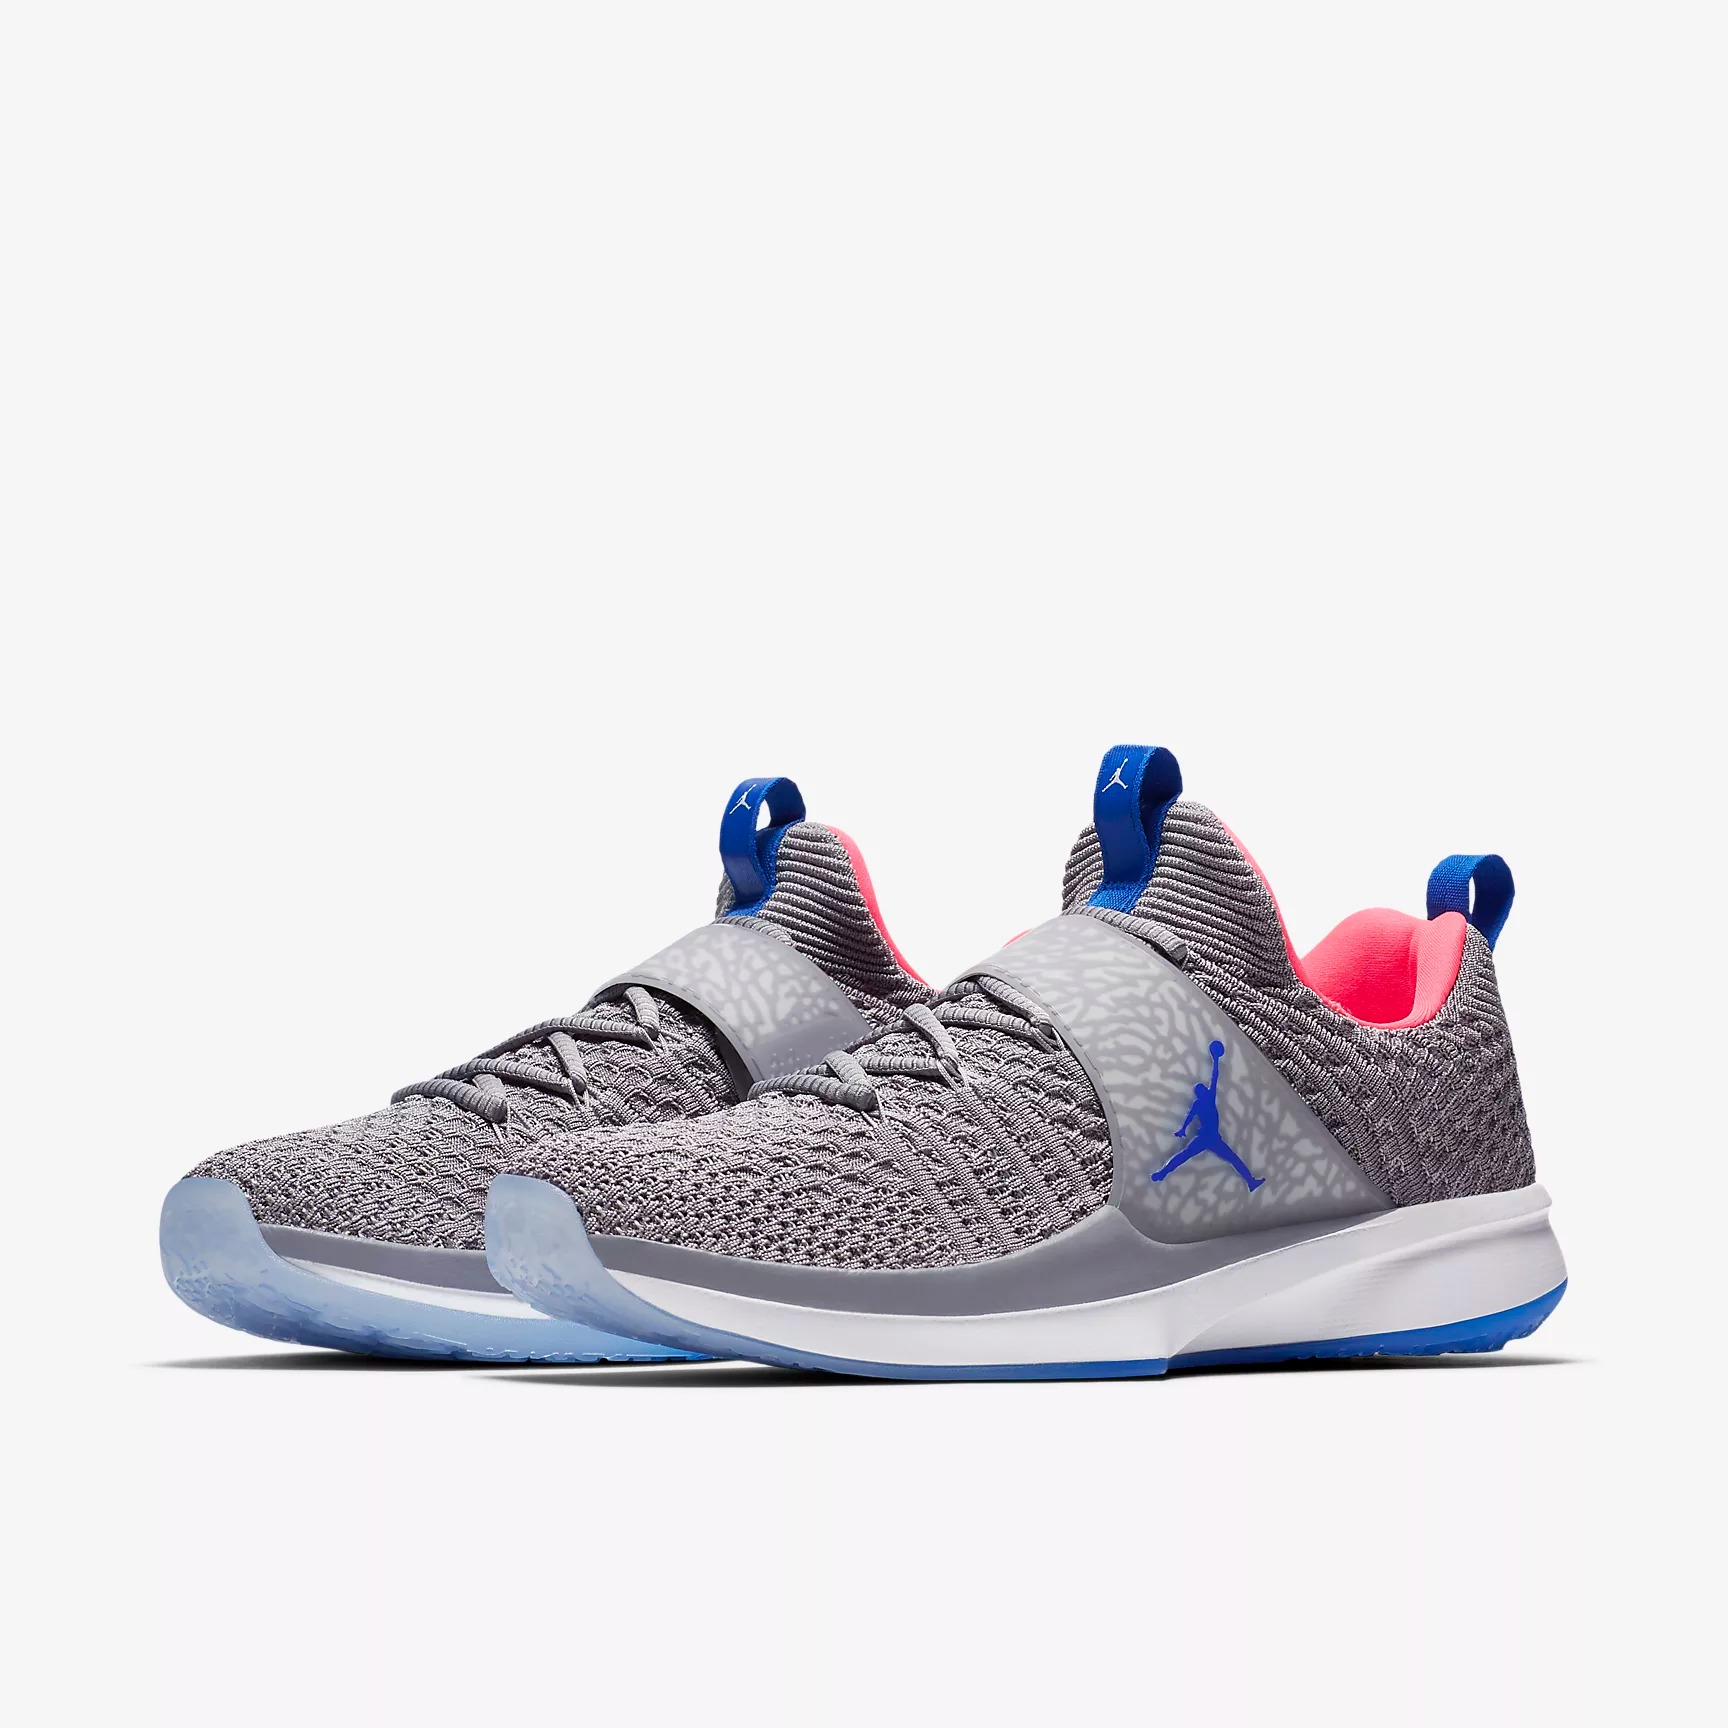 a98266ff93d9a Jordan Trainer 2 Flyknit Training Shoes - SPORT SHOES TRAINING SHOES -  Superfanas.lt